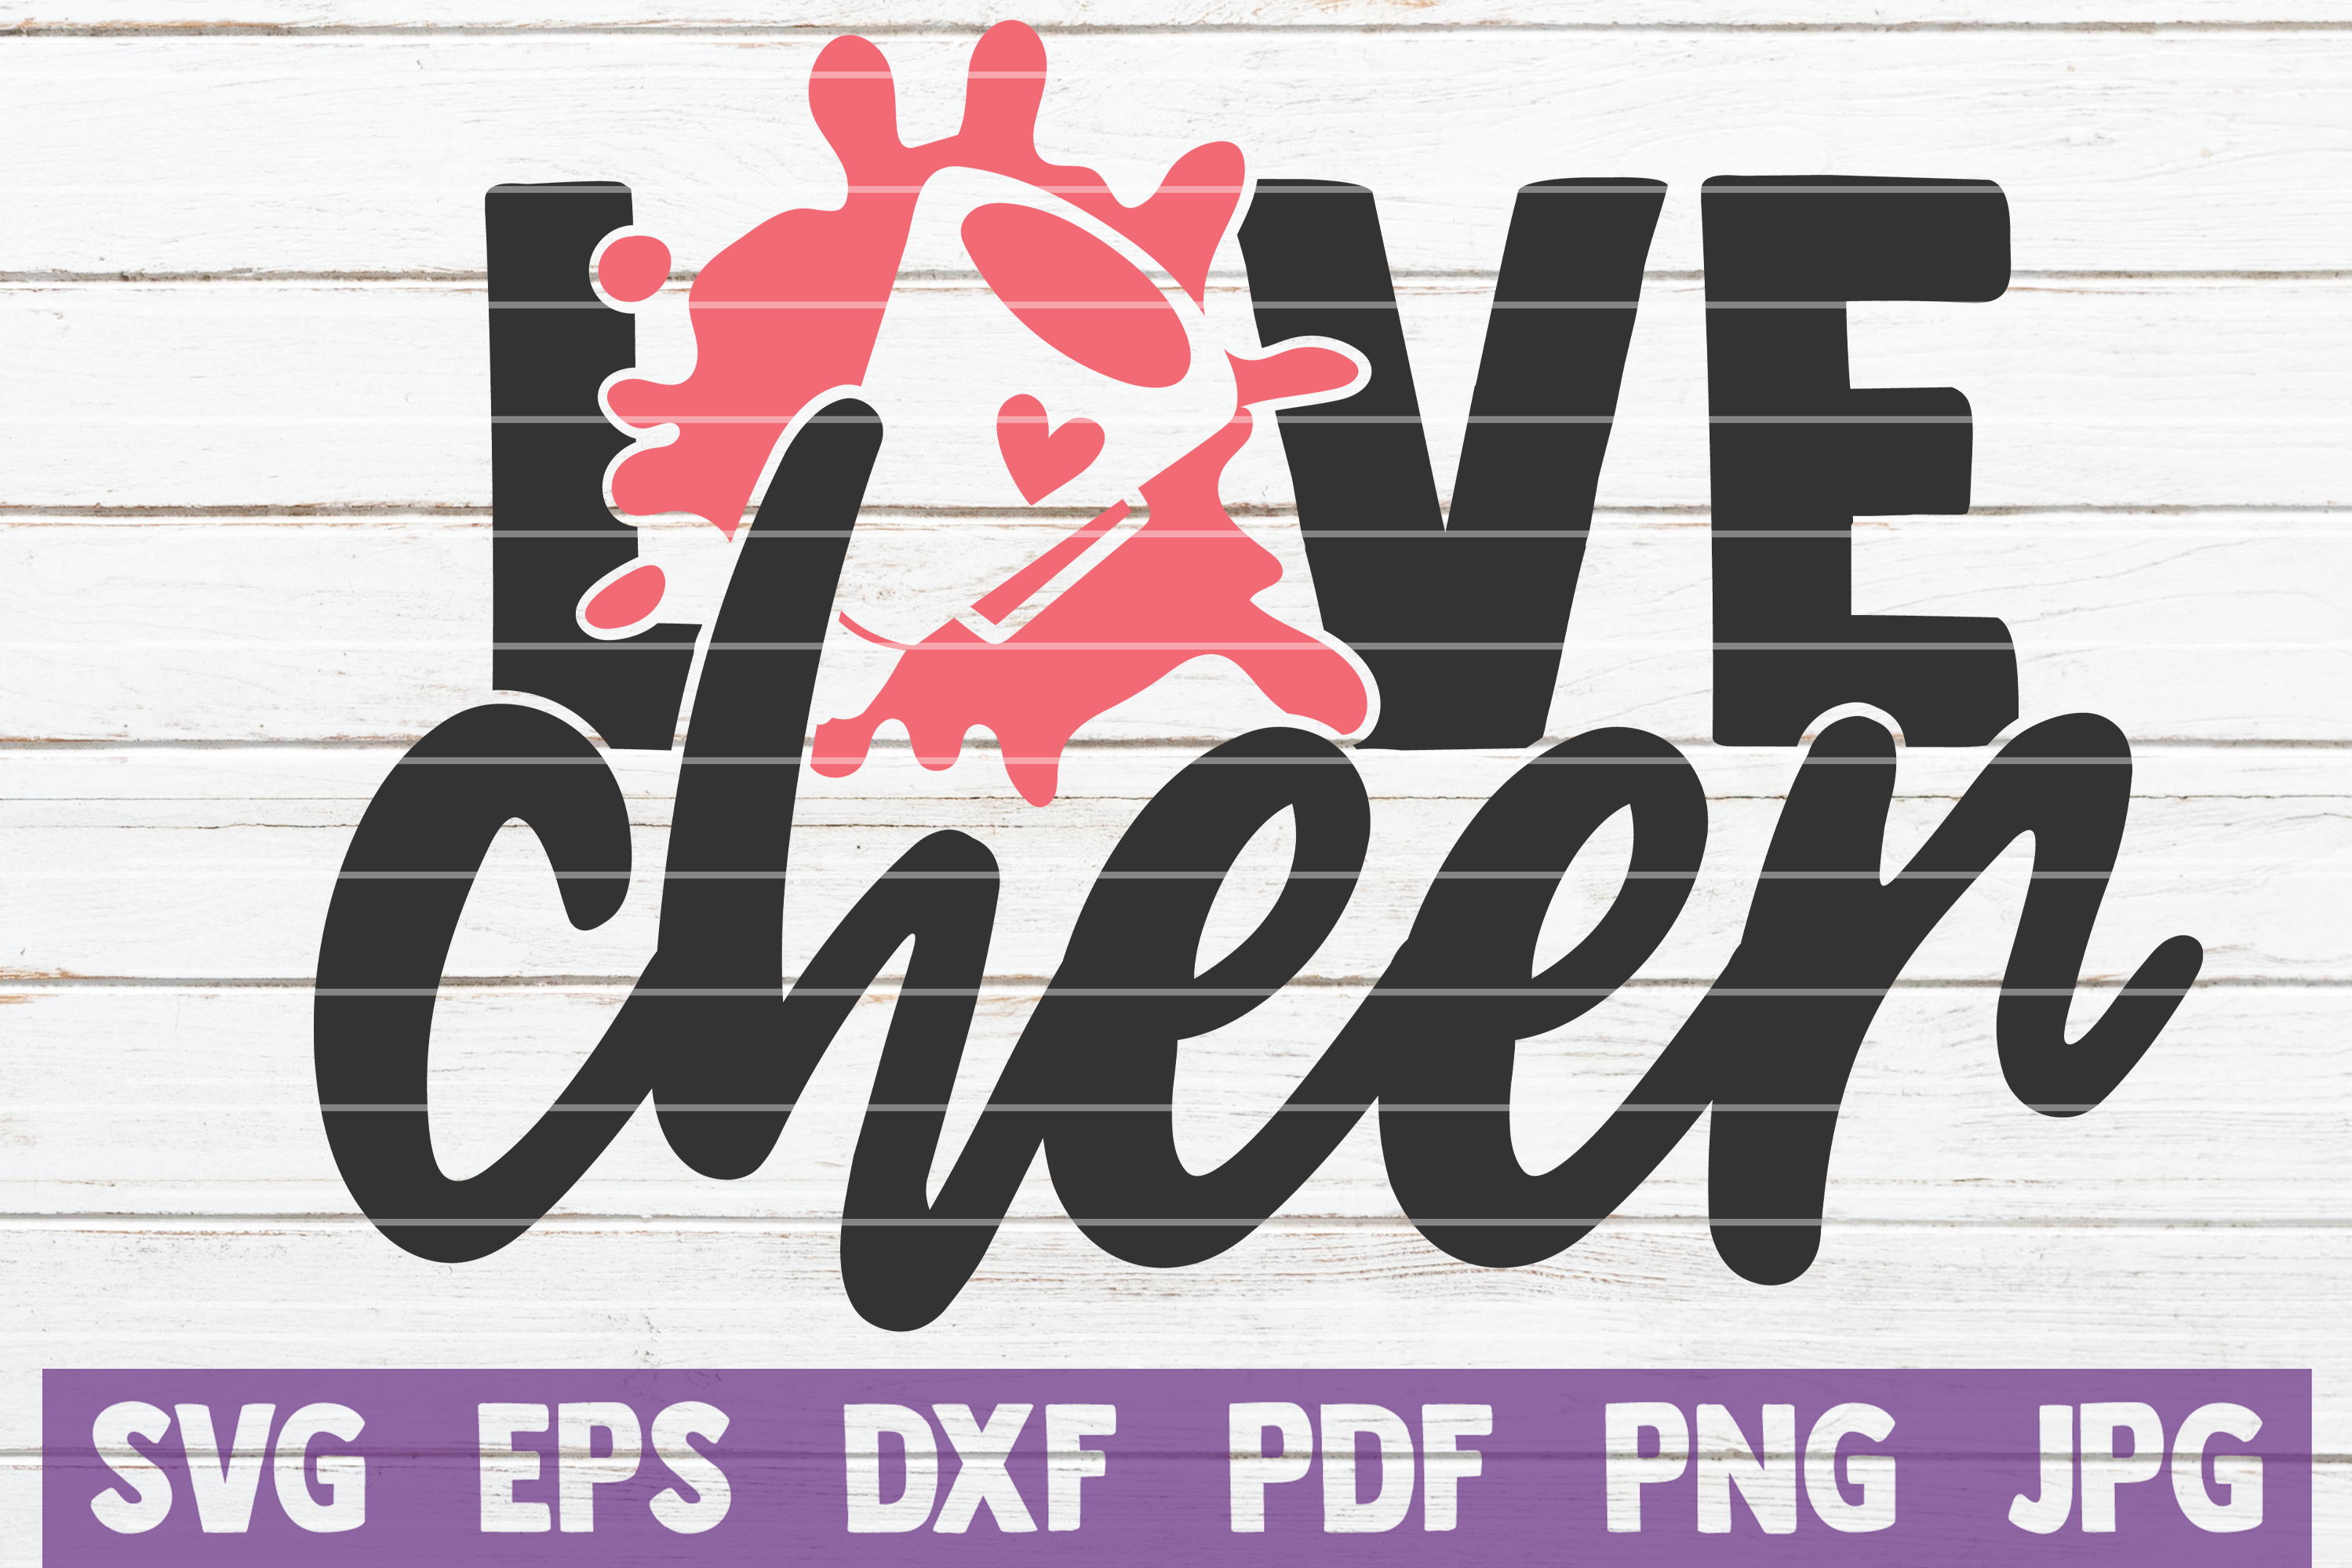 Download Free Love Cheer Graphic By Mintymarshmallows Creative Fabrica for Cricut Explore, Silhouette and other cutting machines.